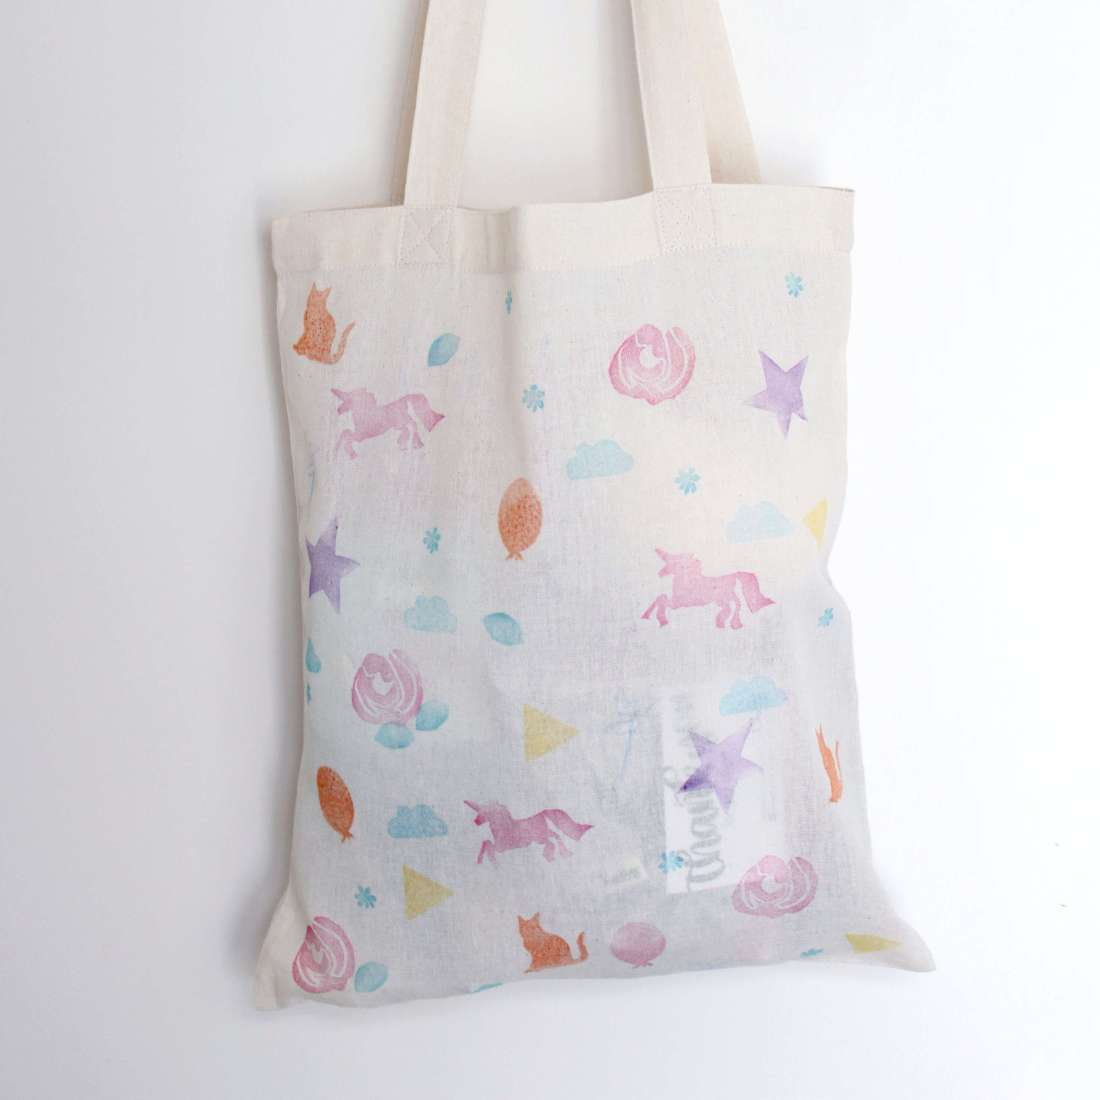 Hand printed tote bag by The Party Bag Lady